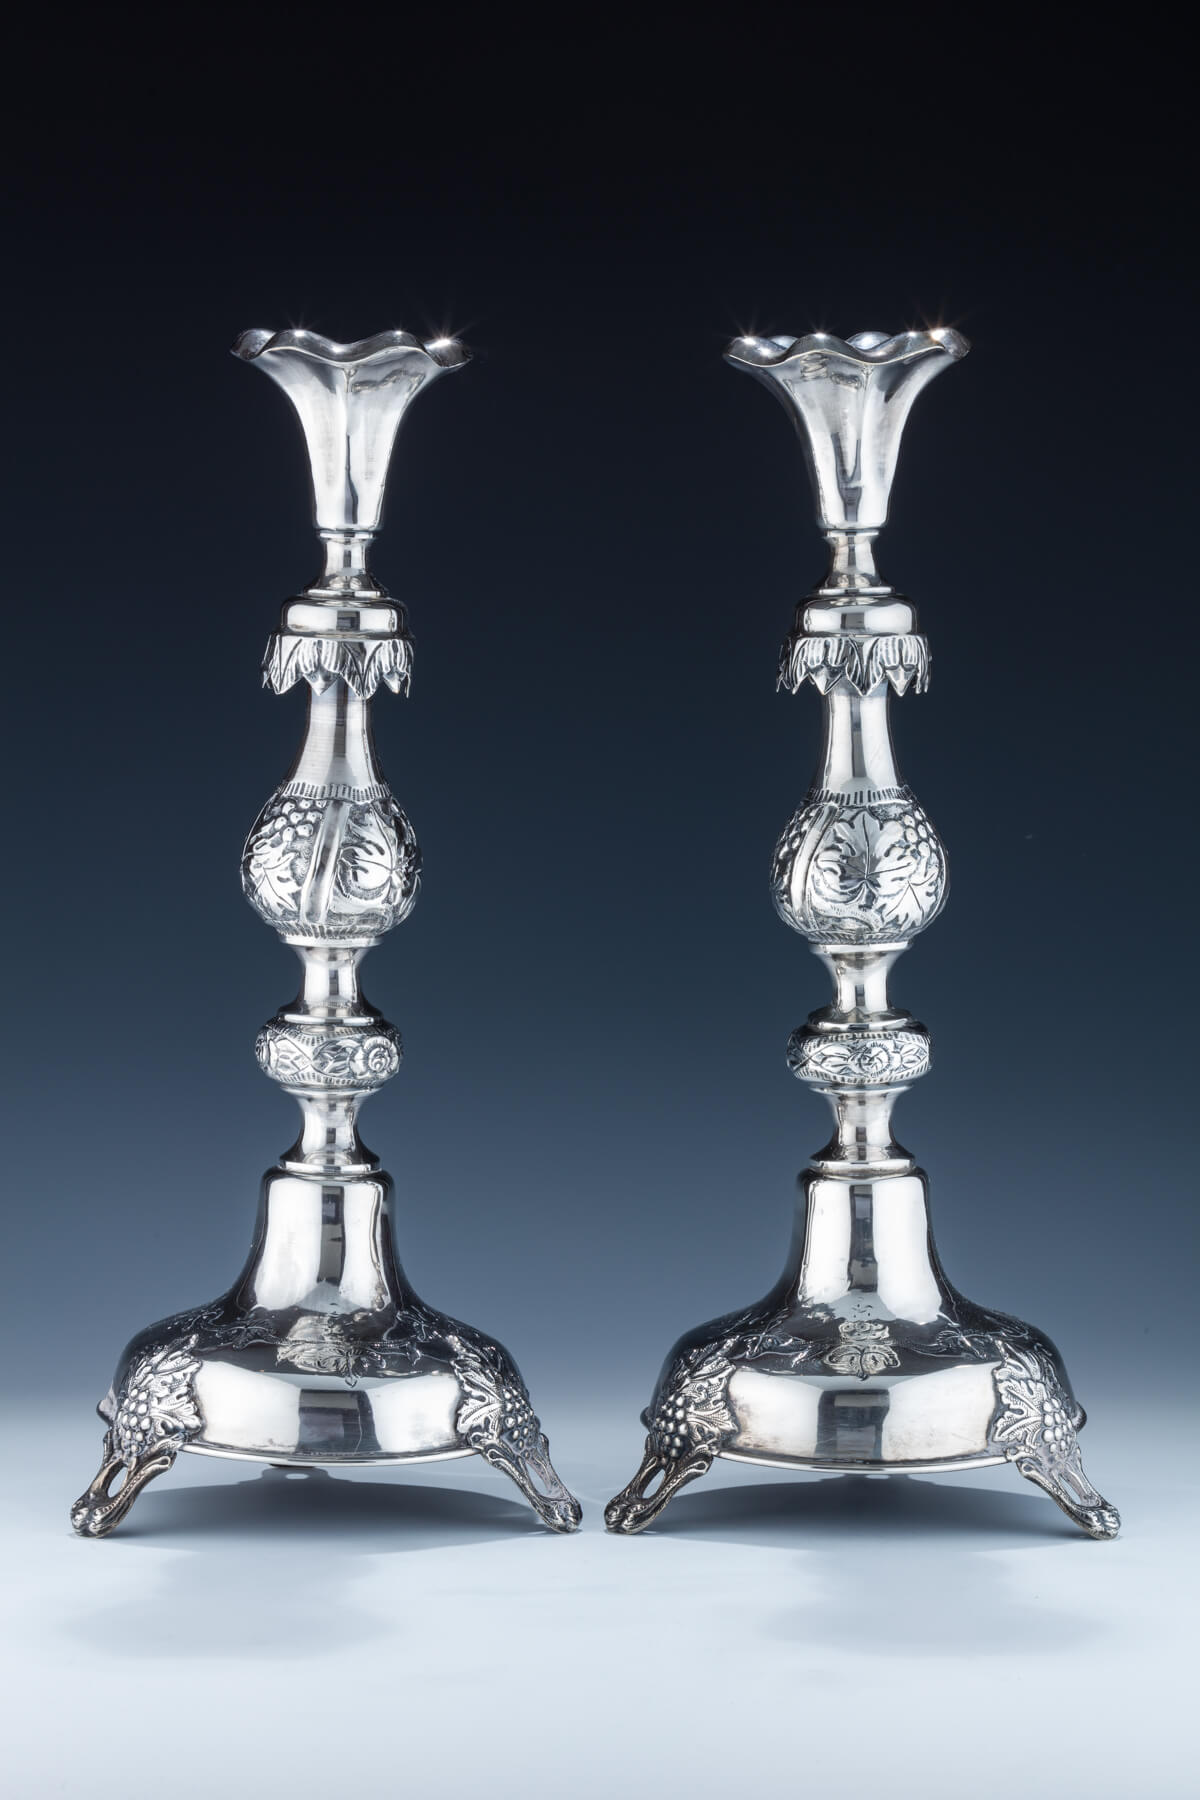 37. A Large Pair of Silver Candlesticks by Shmuel Skarlat